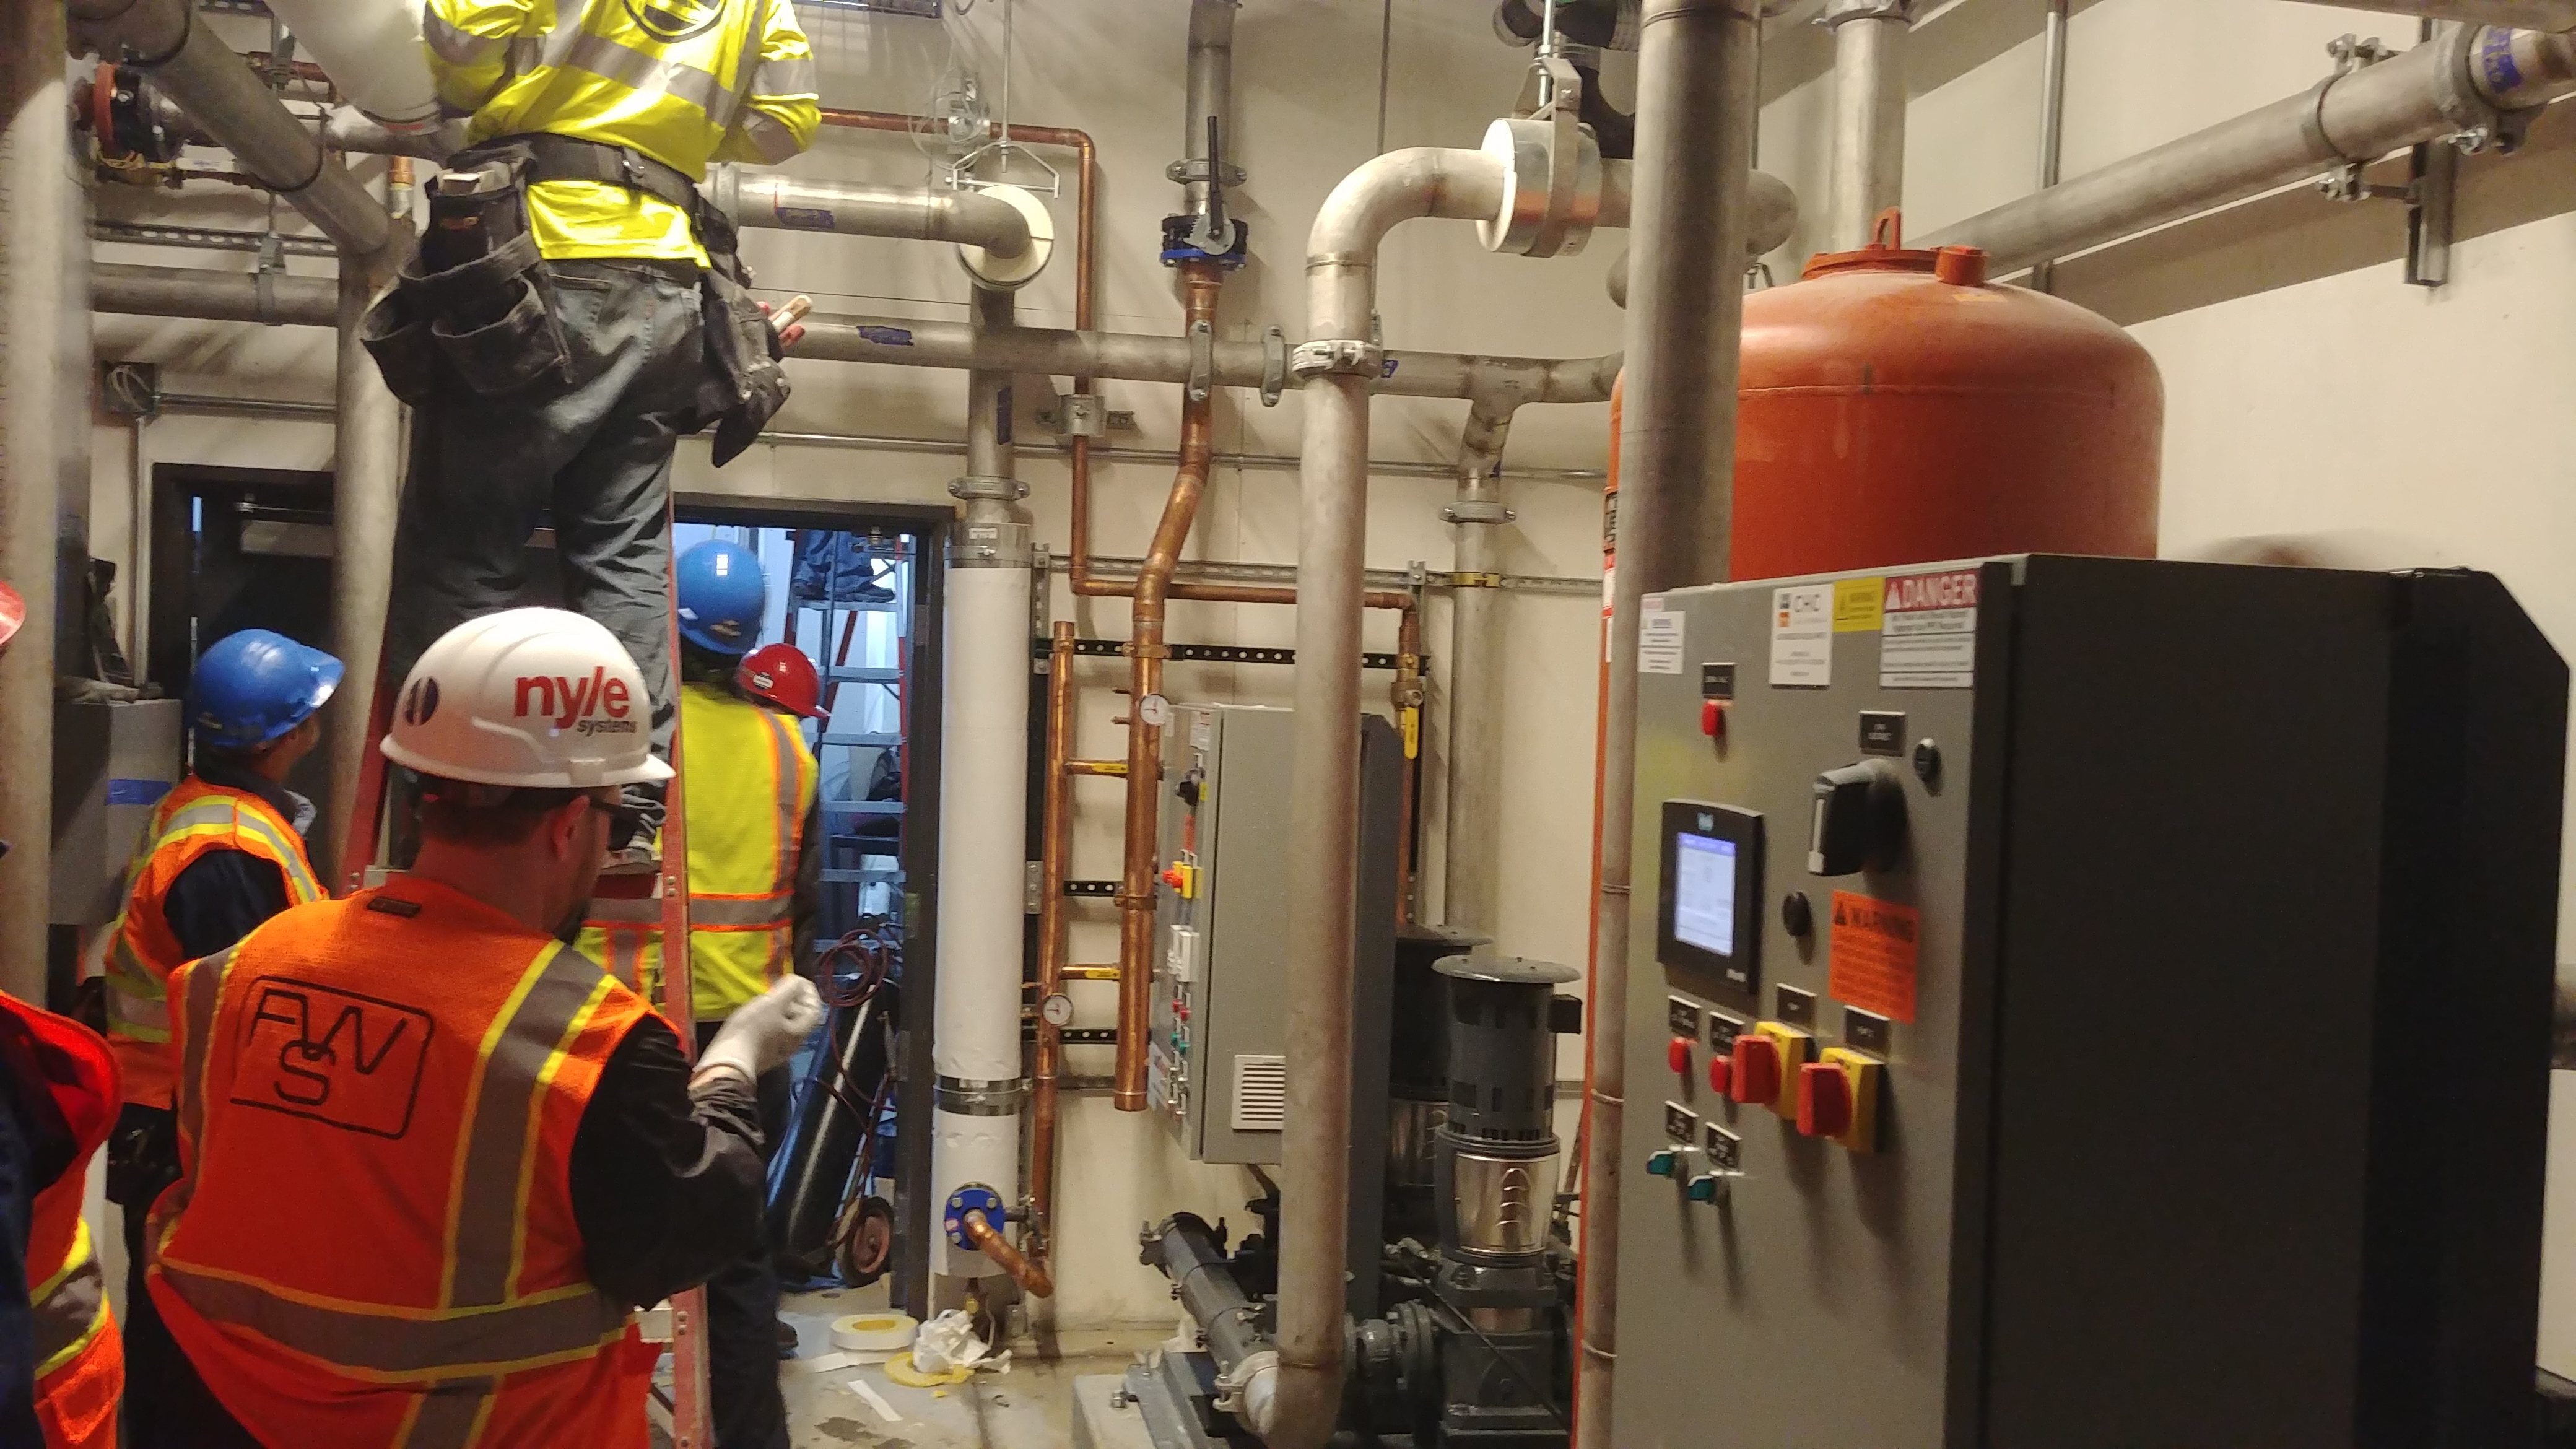 Making Hot Water, UCSF Commissioning! - Nyle Systems